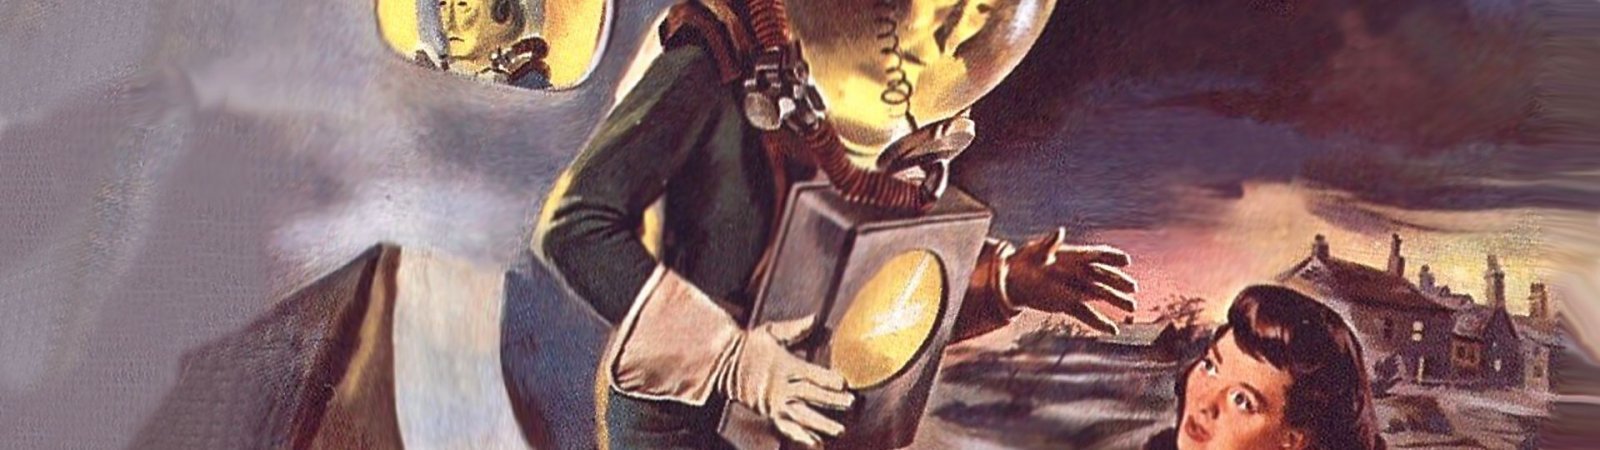 Photo du film : The man from planet X